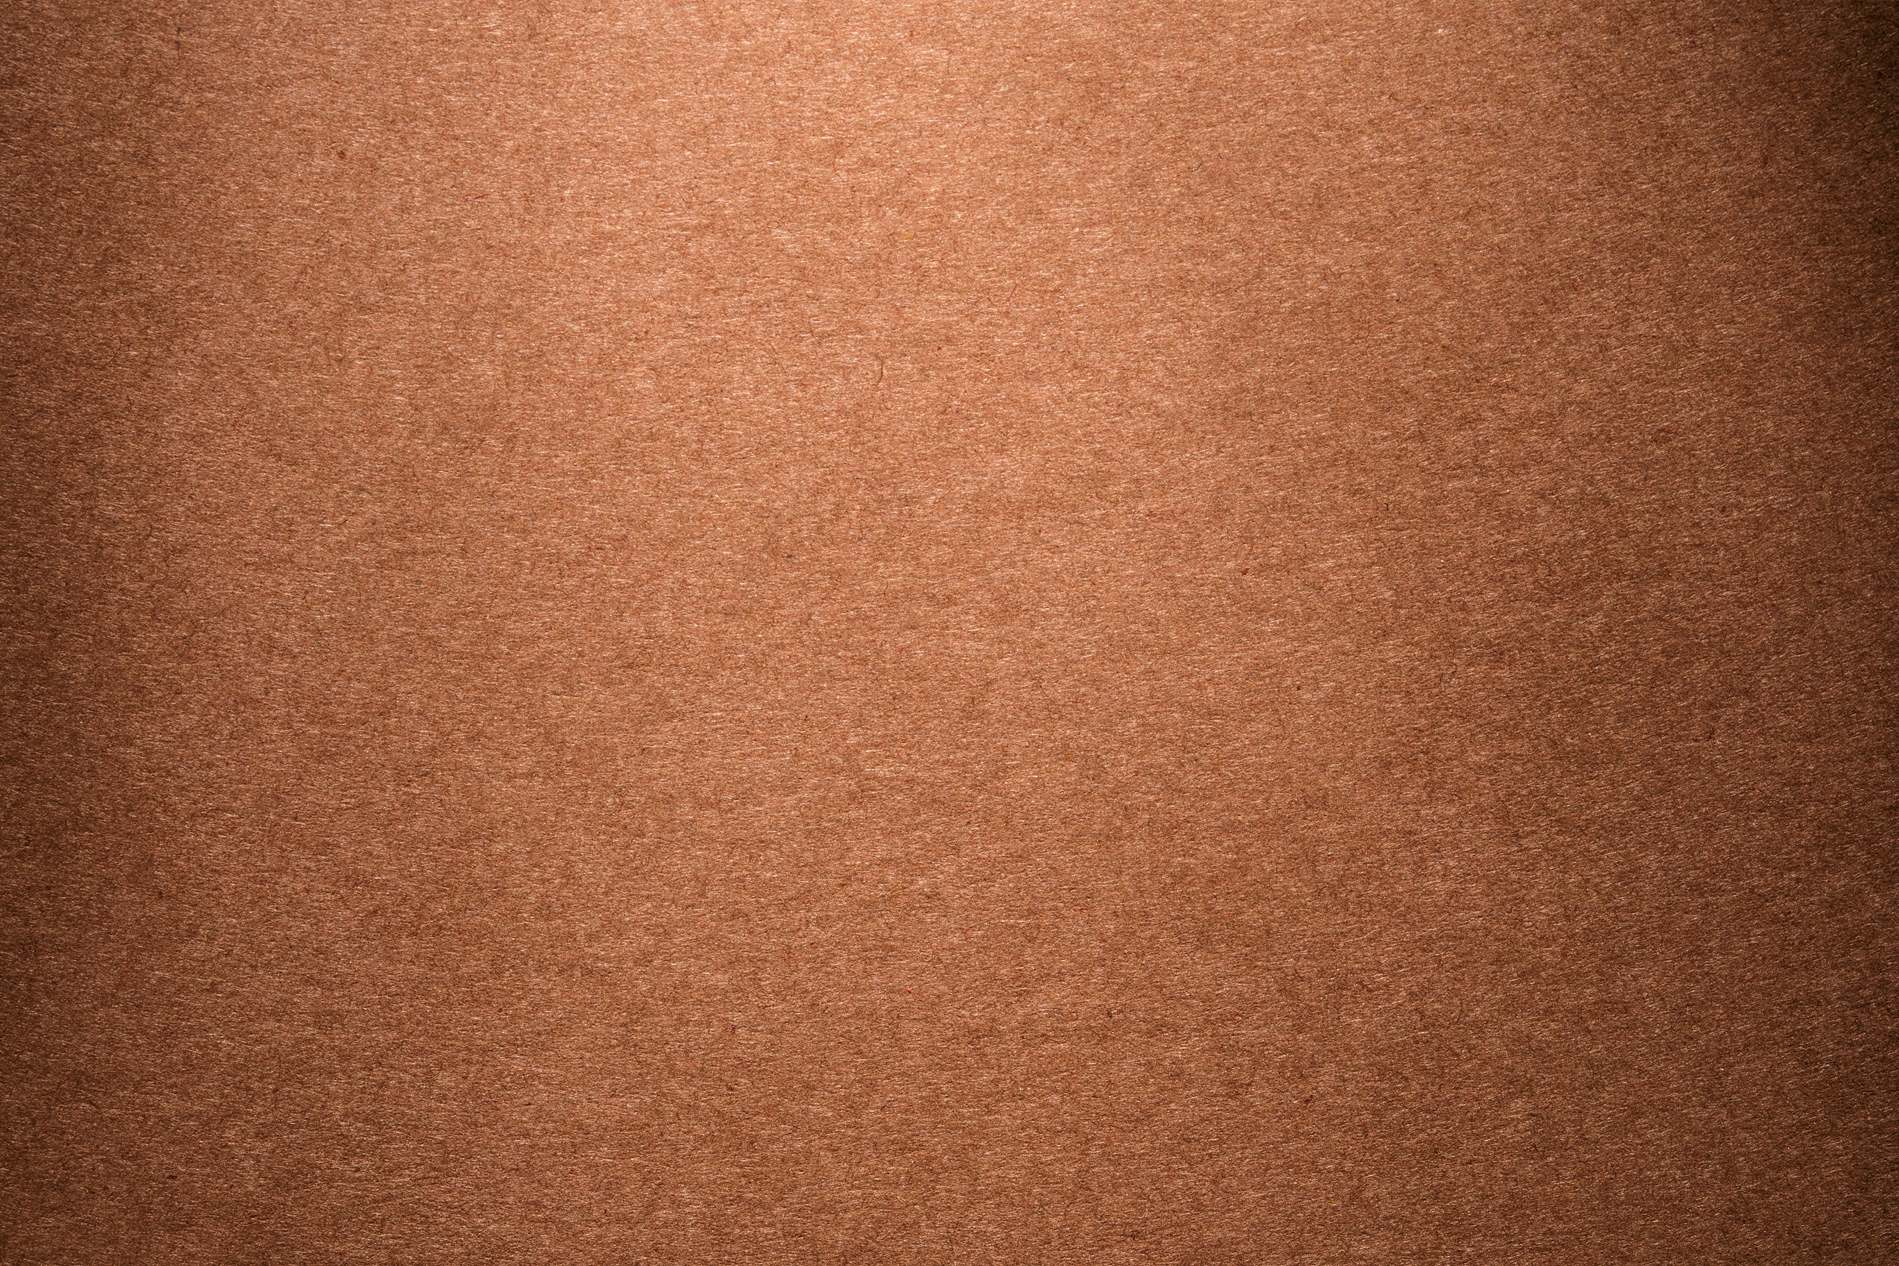 Clean Brown Vintage Paper Background Texture - PhotoHDX